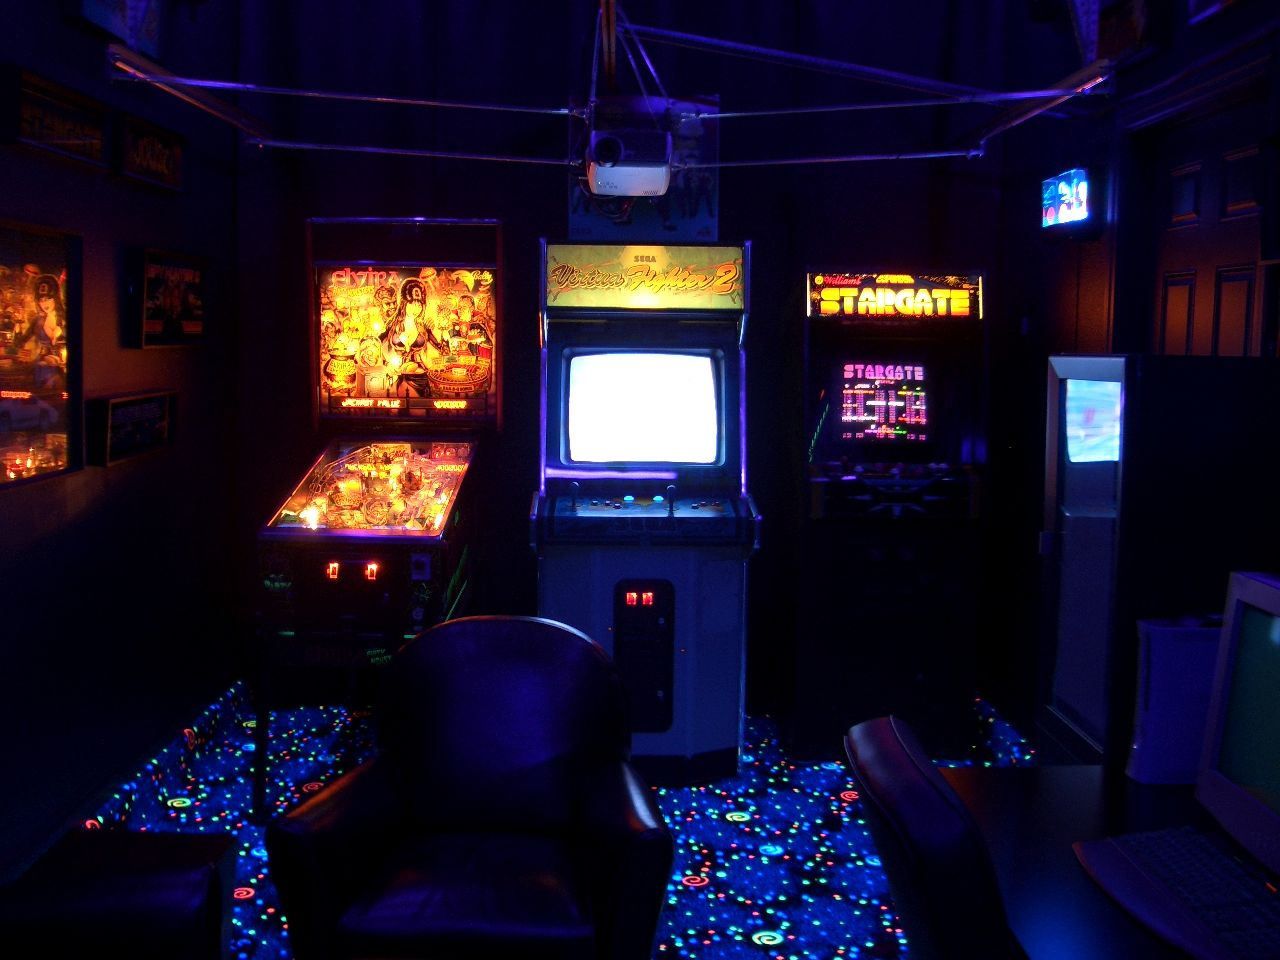 Snapstream Game Room Arcade Room Video Game Rooms Arcade Game Room